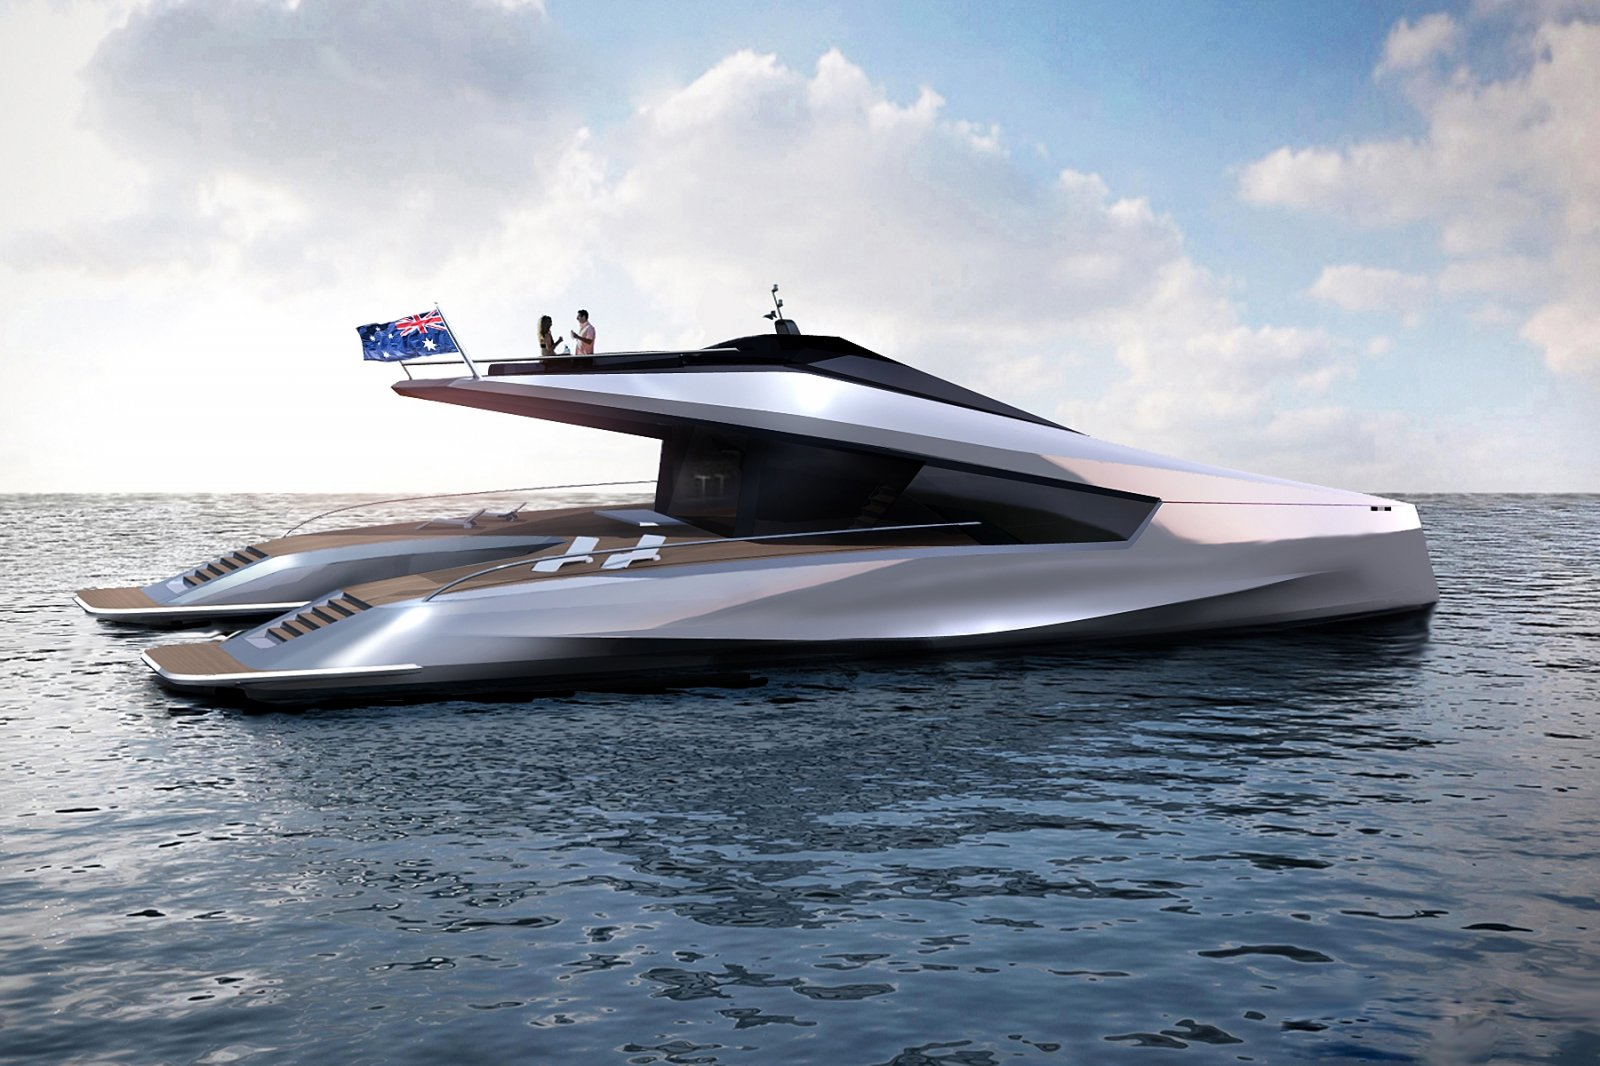 Peugeot's luxury 115 Power Catamaran 3